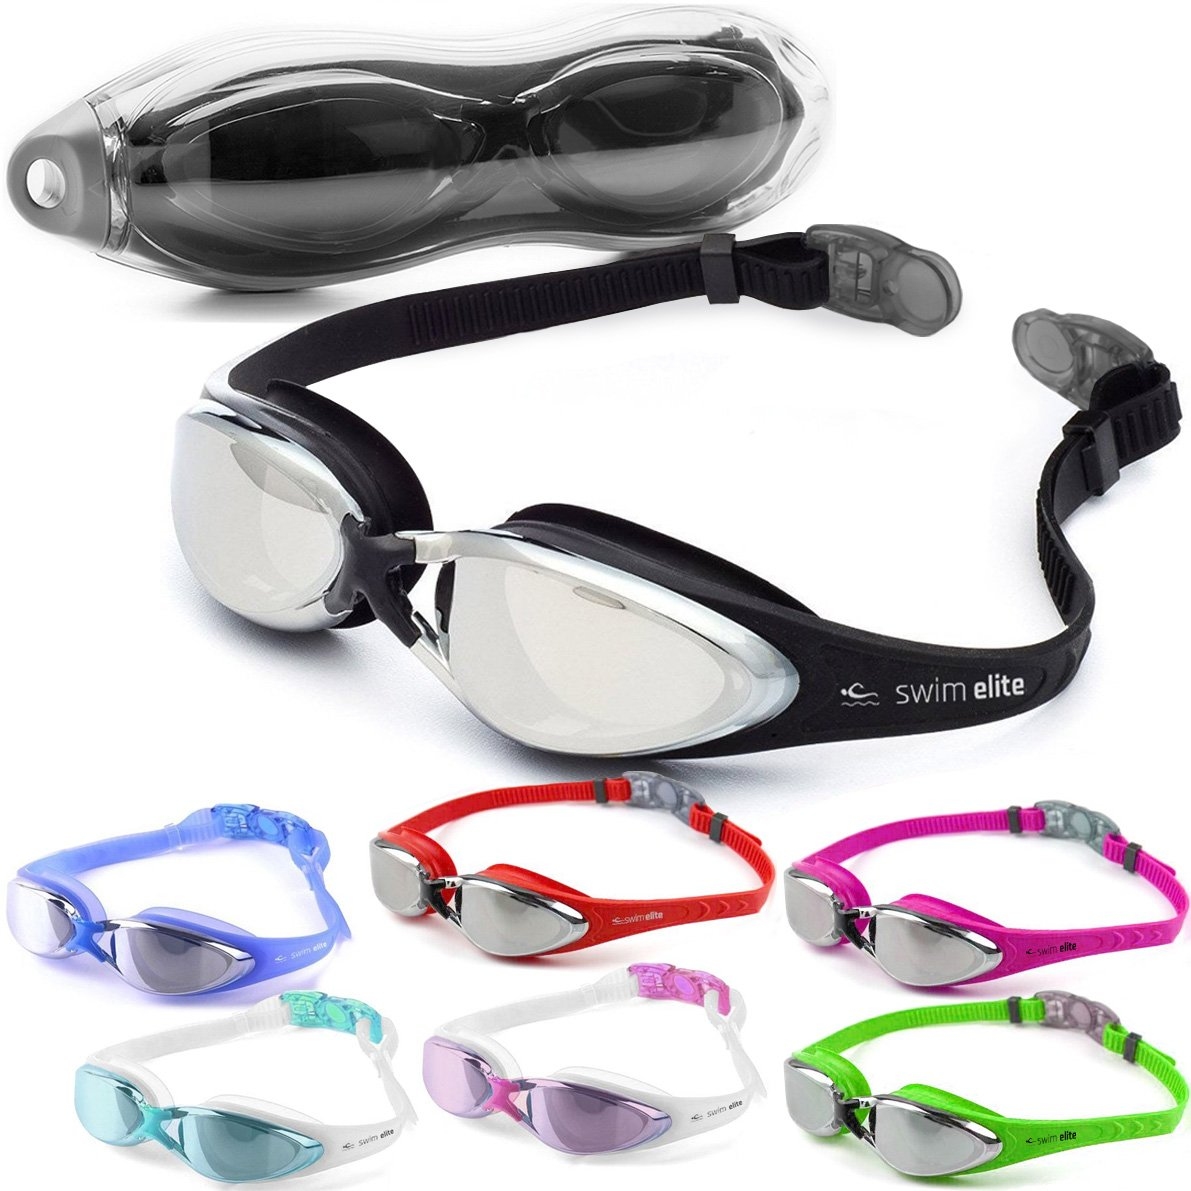 113e758be3 Swim Elite Swimming Goggles Mirror Finish with UV and Anti Fog Protection - Swim  Goggle For Adults